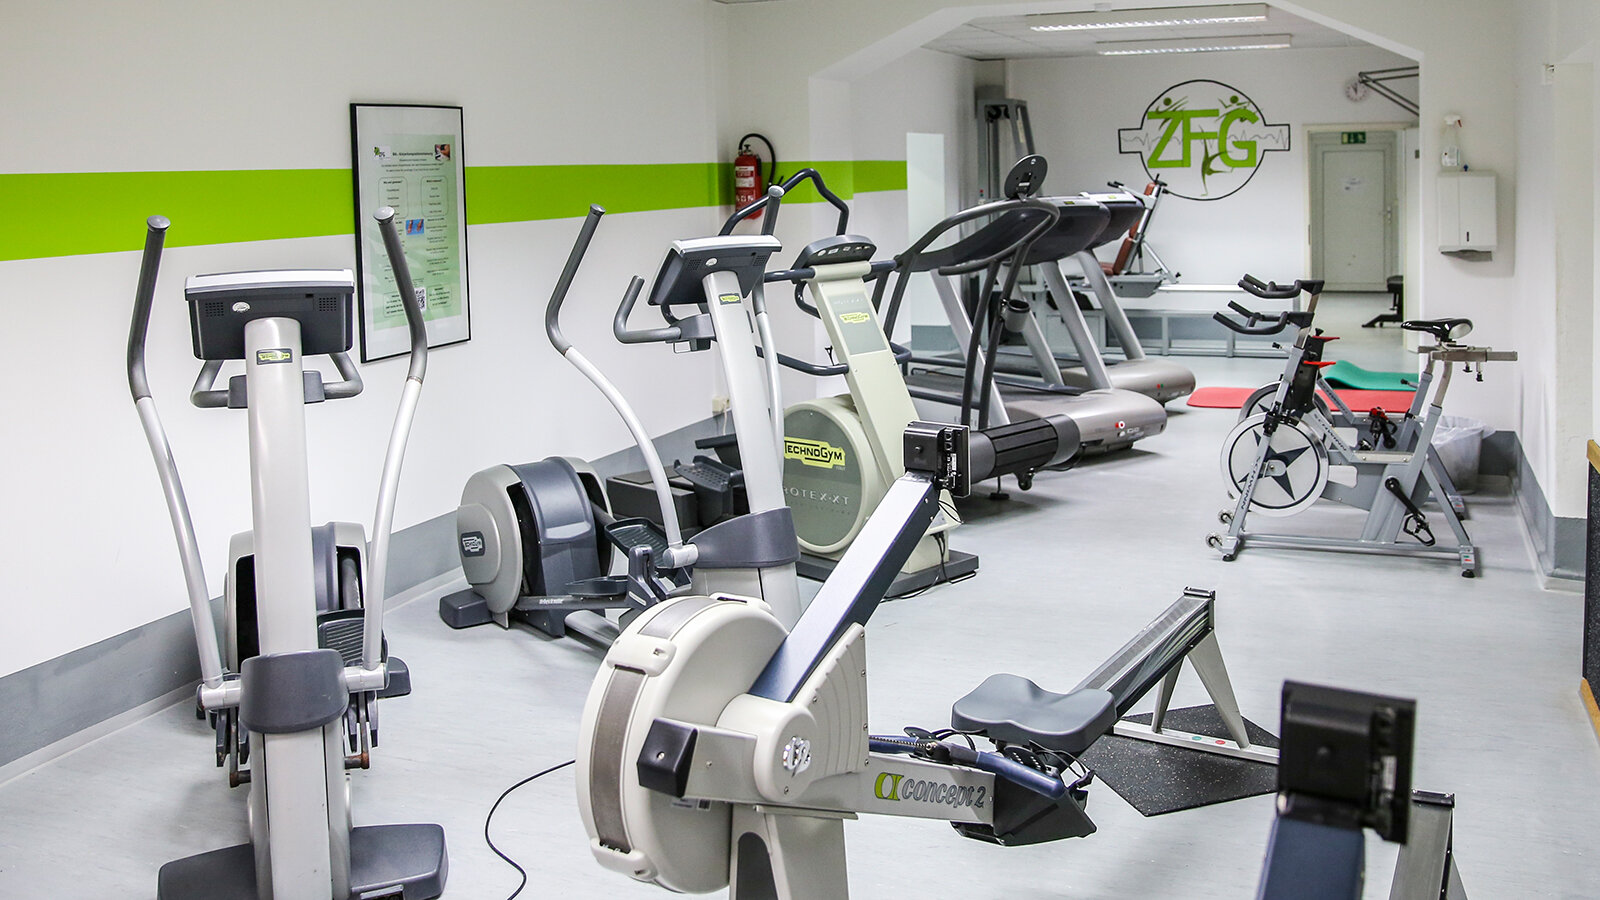 Photo of a fitness studio with different exercise machines.